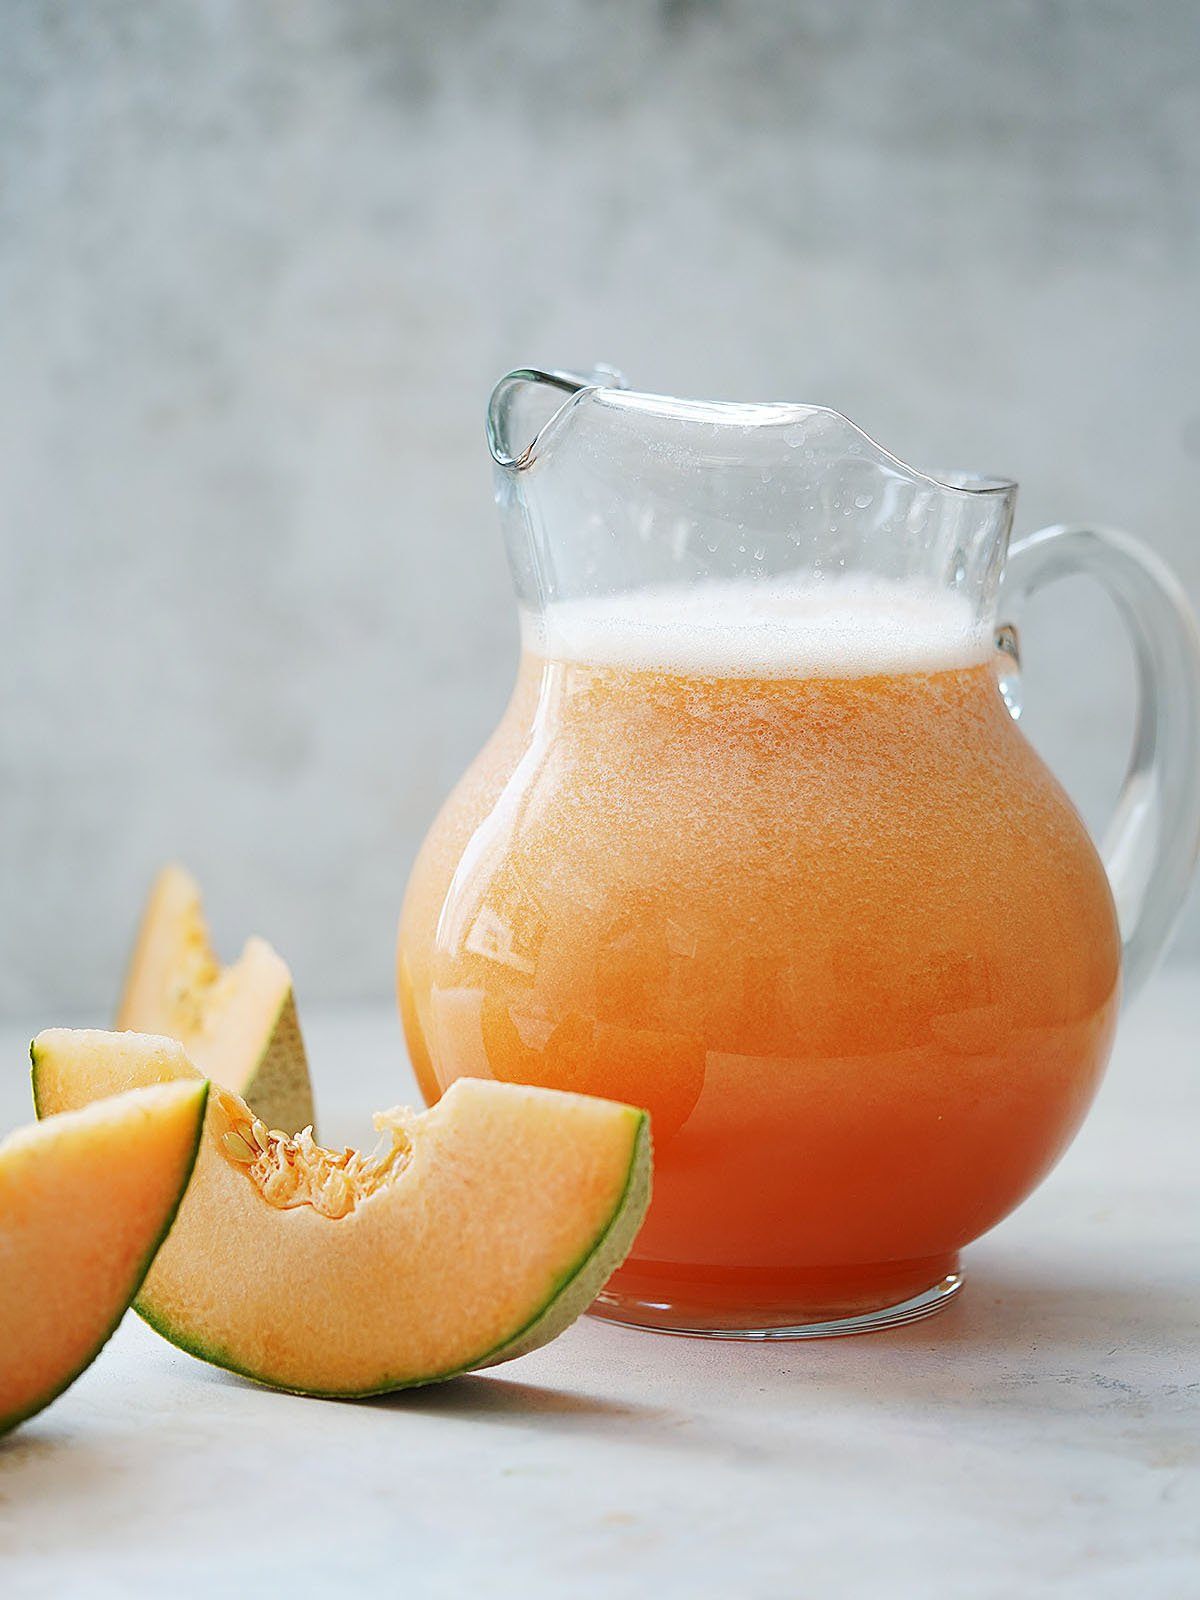 A jar with cantaloupe water and cantaloupe slices on the side.